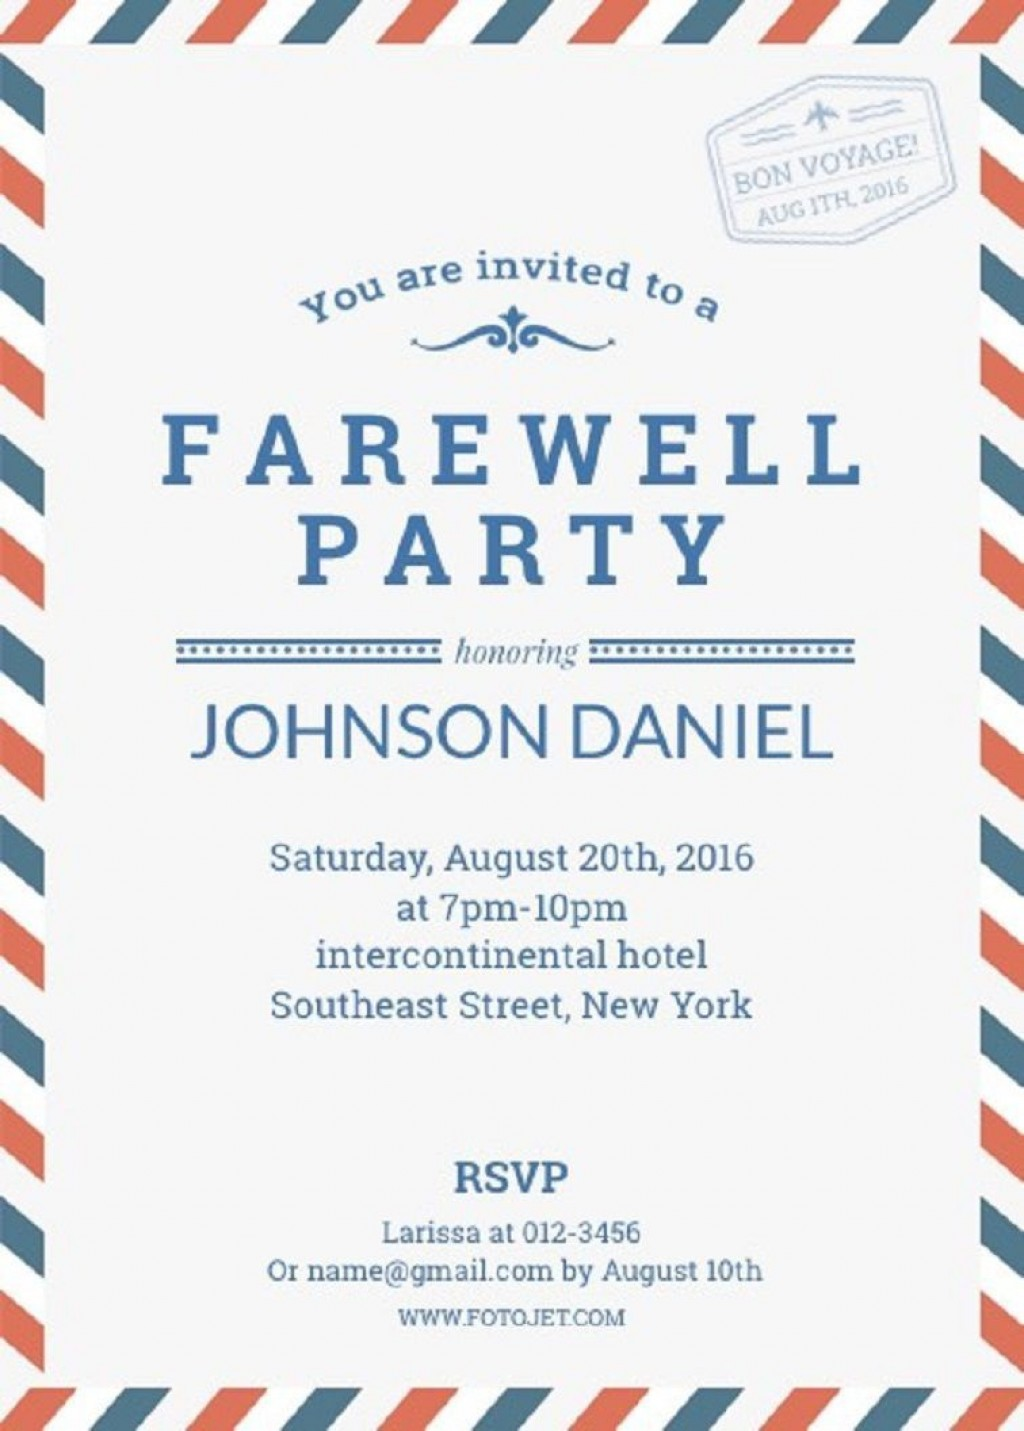 008 Outstanding Open House Invite Template Sample  Templates Party InvitationLarge